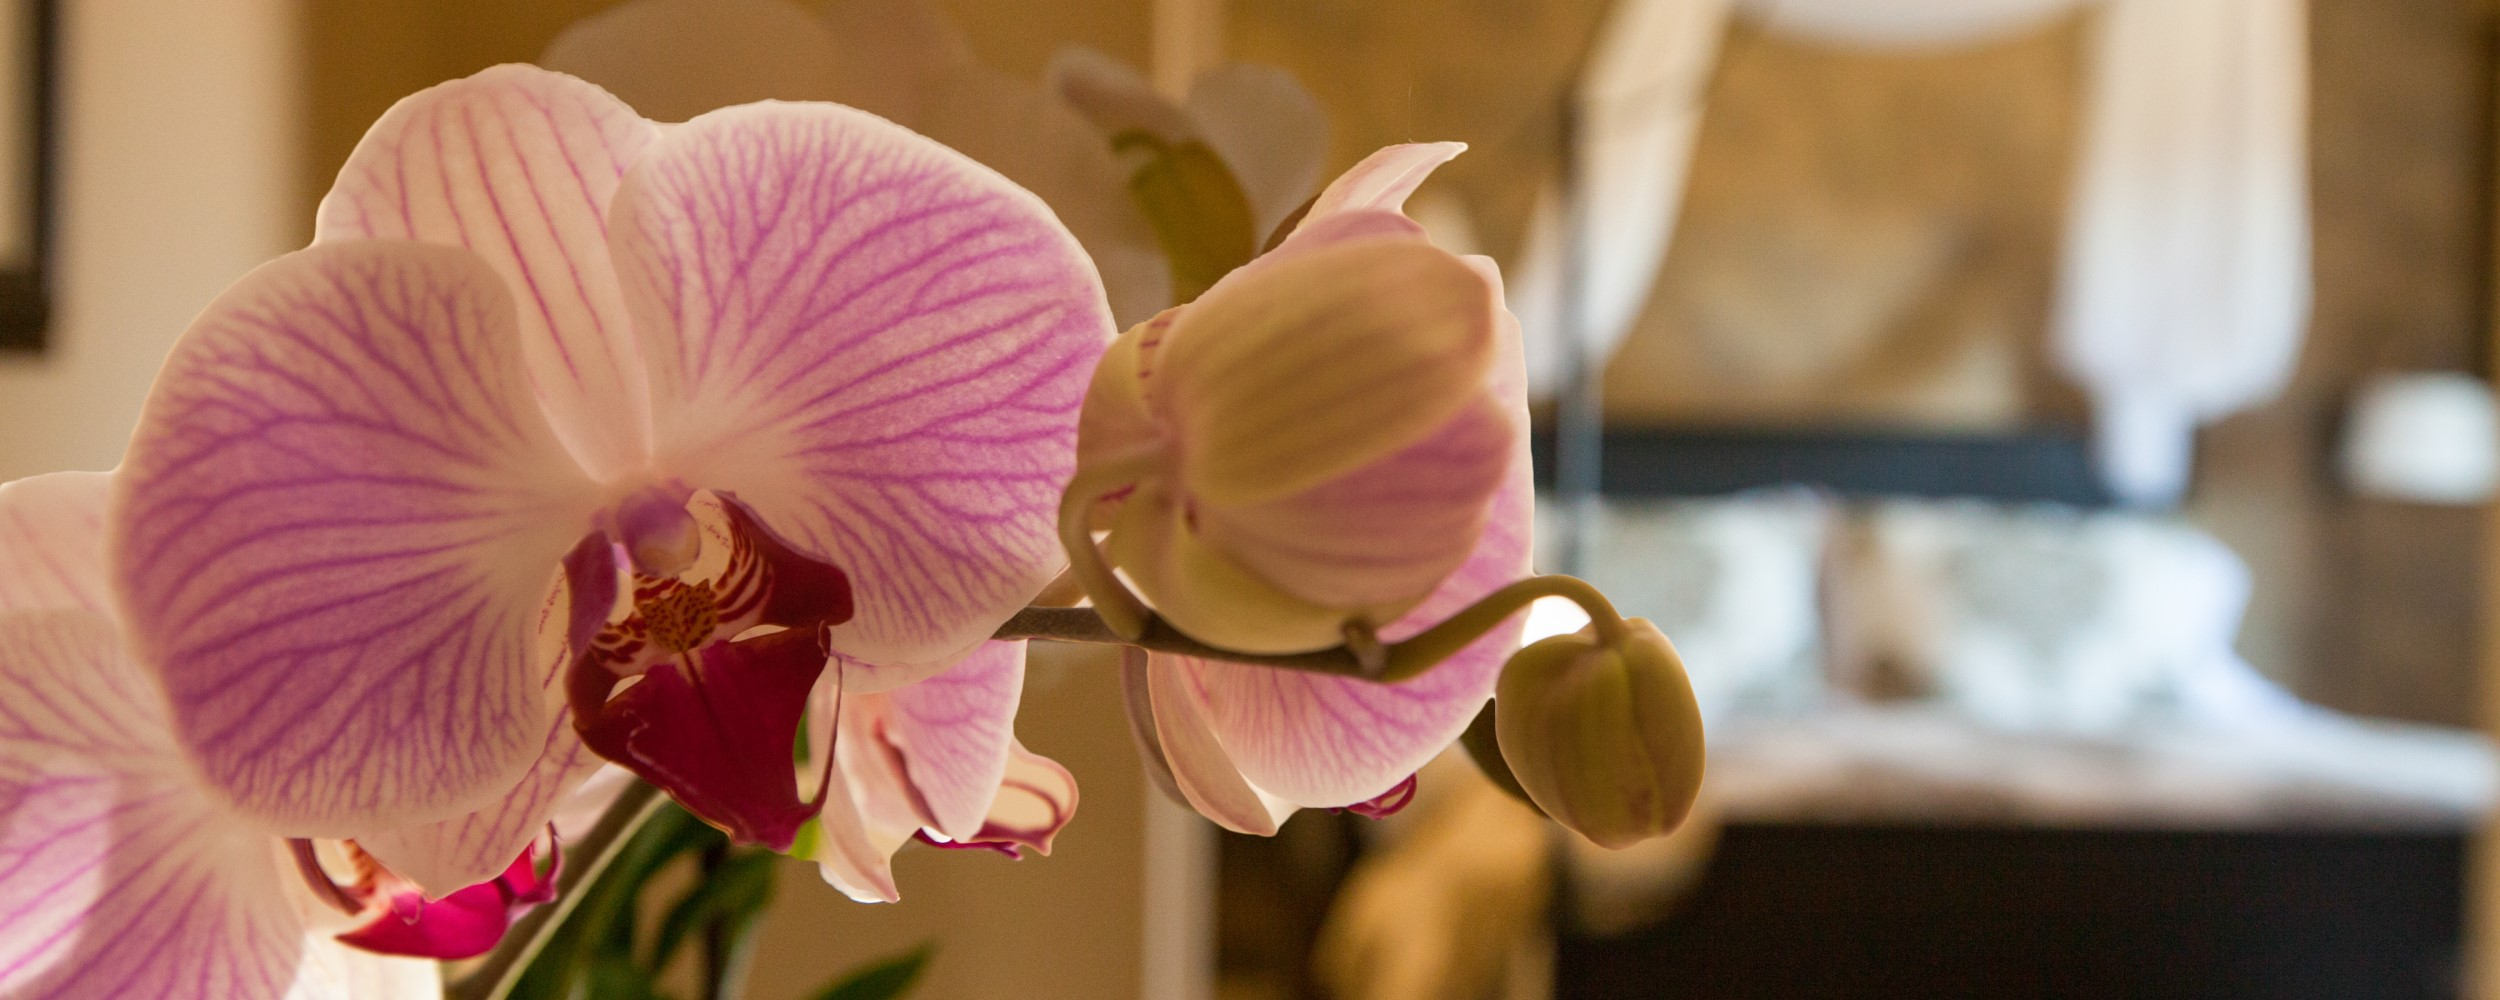 Home - Orchid & The Empire Room 2500x1000